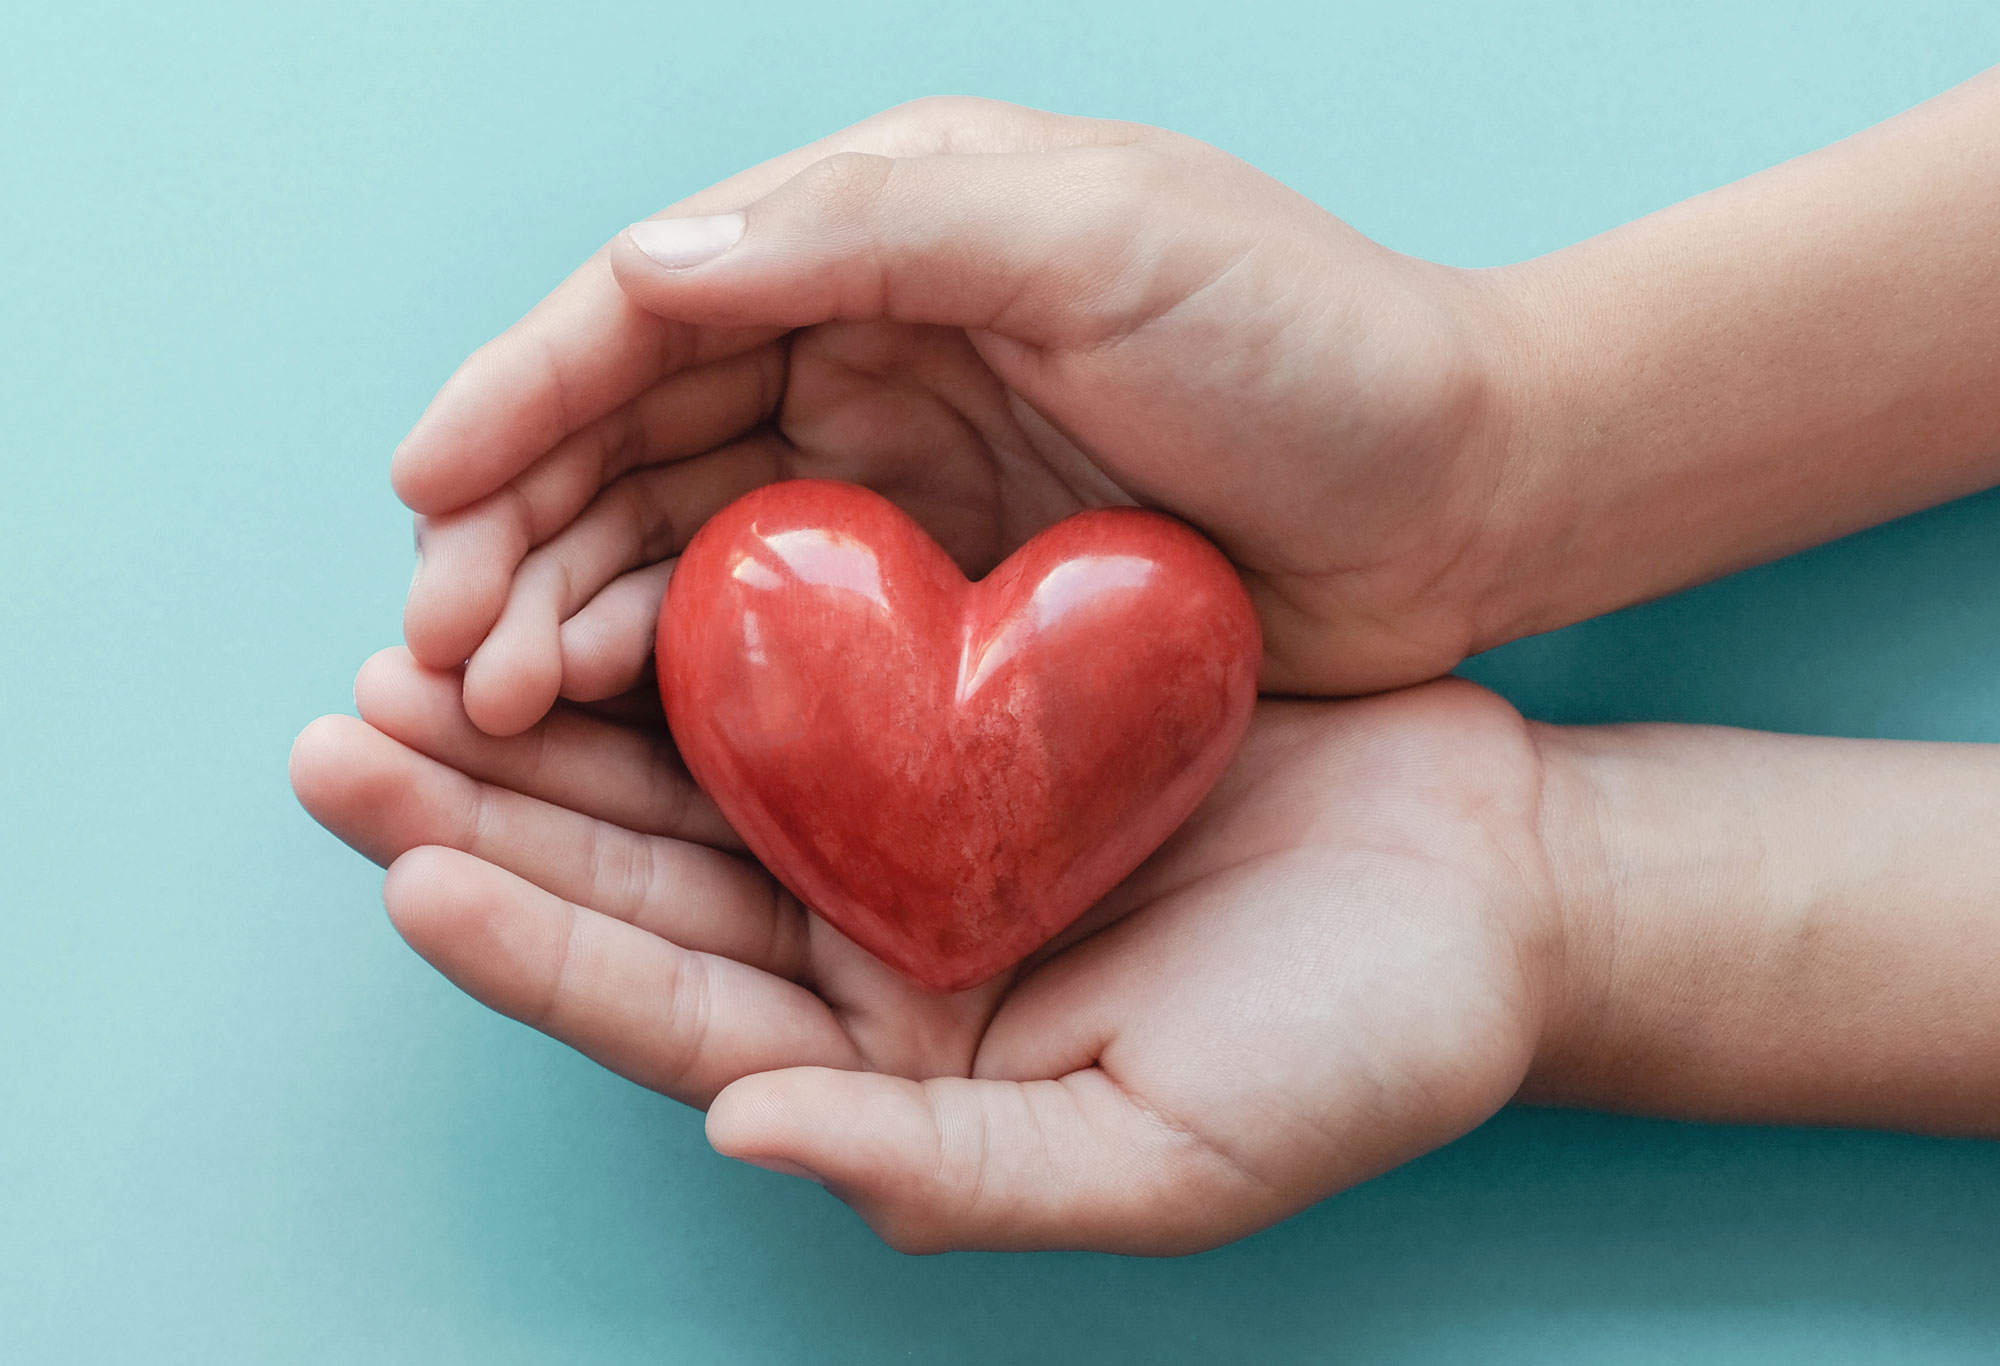 Hands holding a heart showing Rutland's caring nature